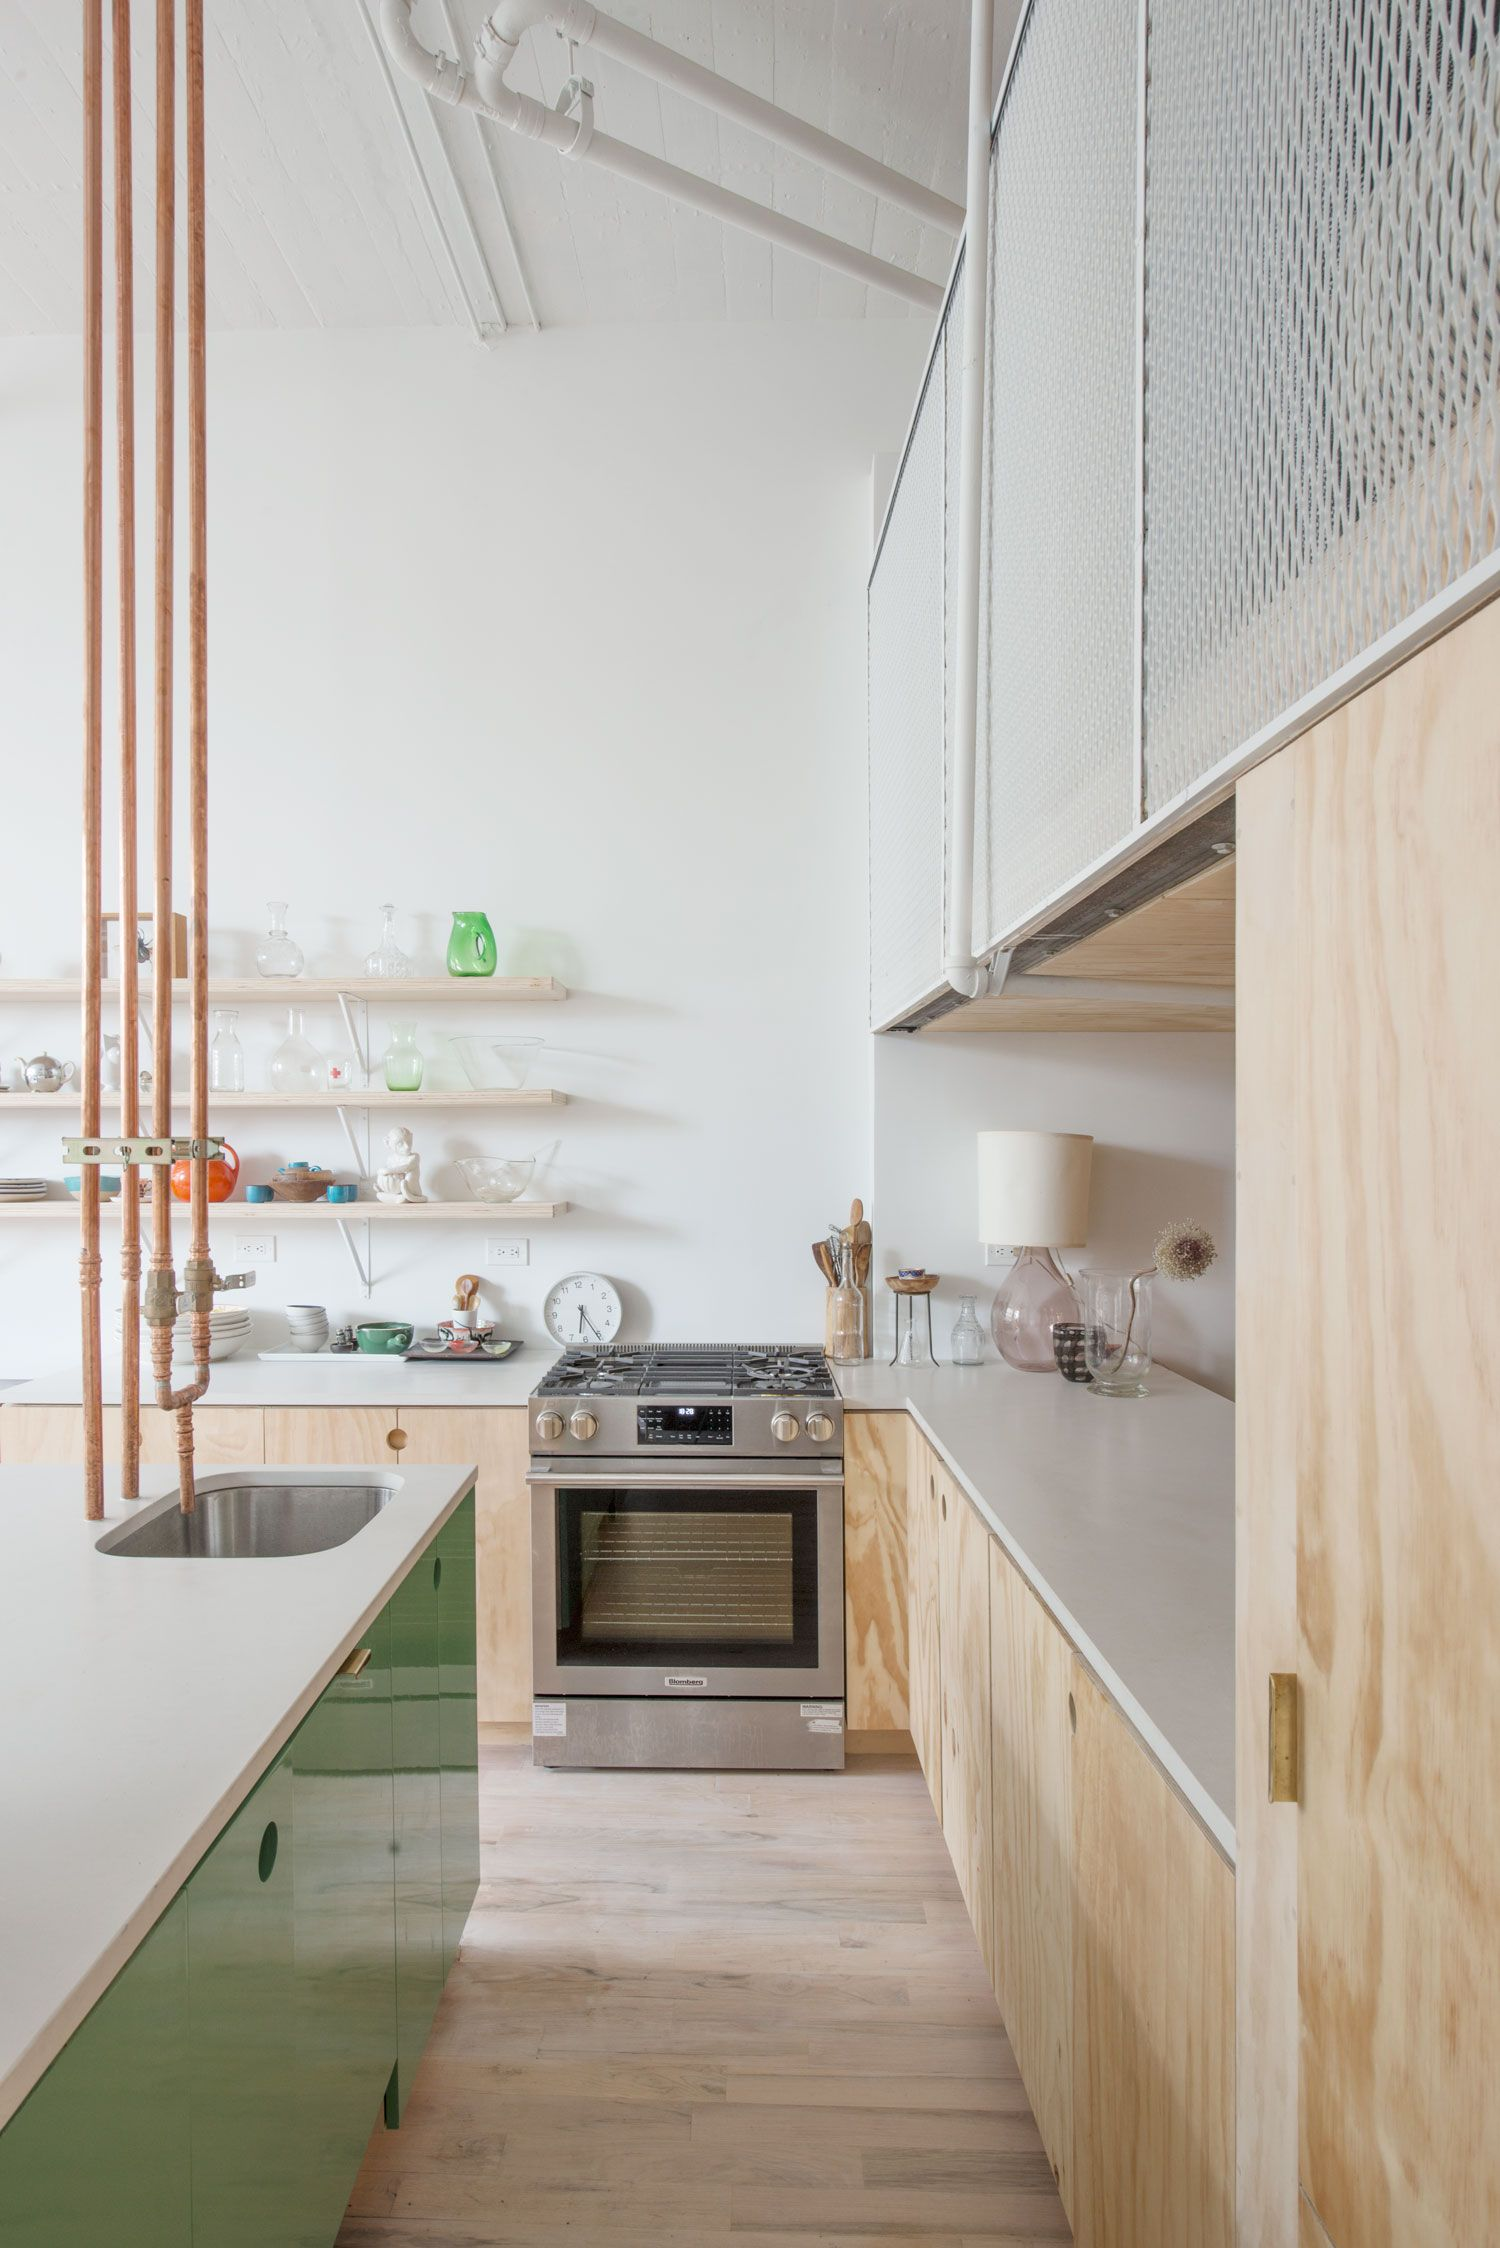 Bed Stuy Loft In Brooklyn, NY By New Affiliates   Yellowtrace